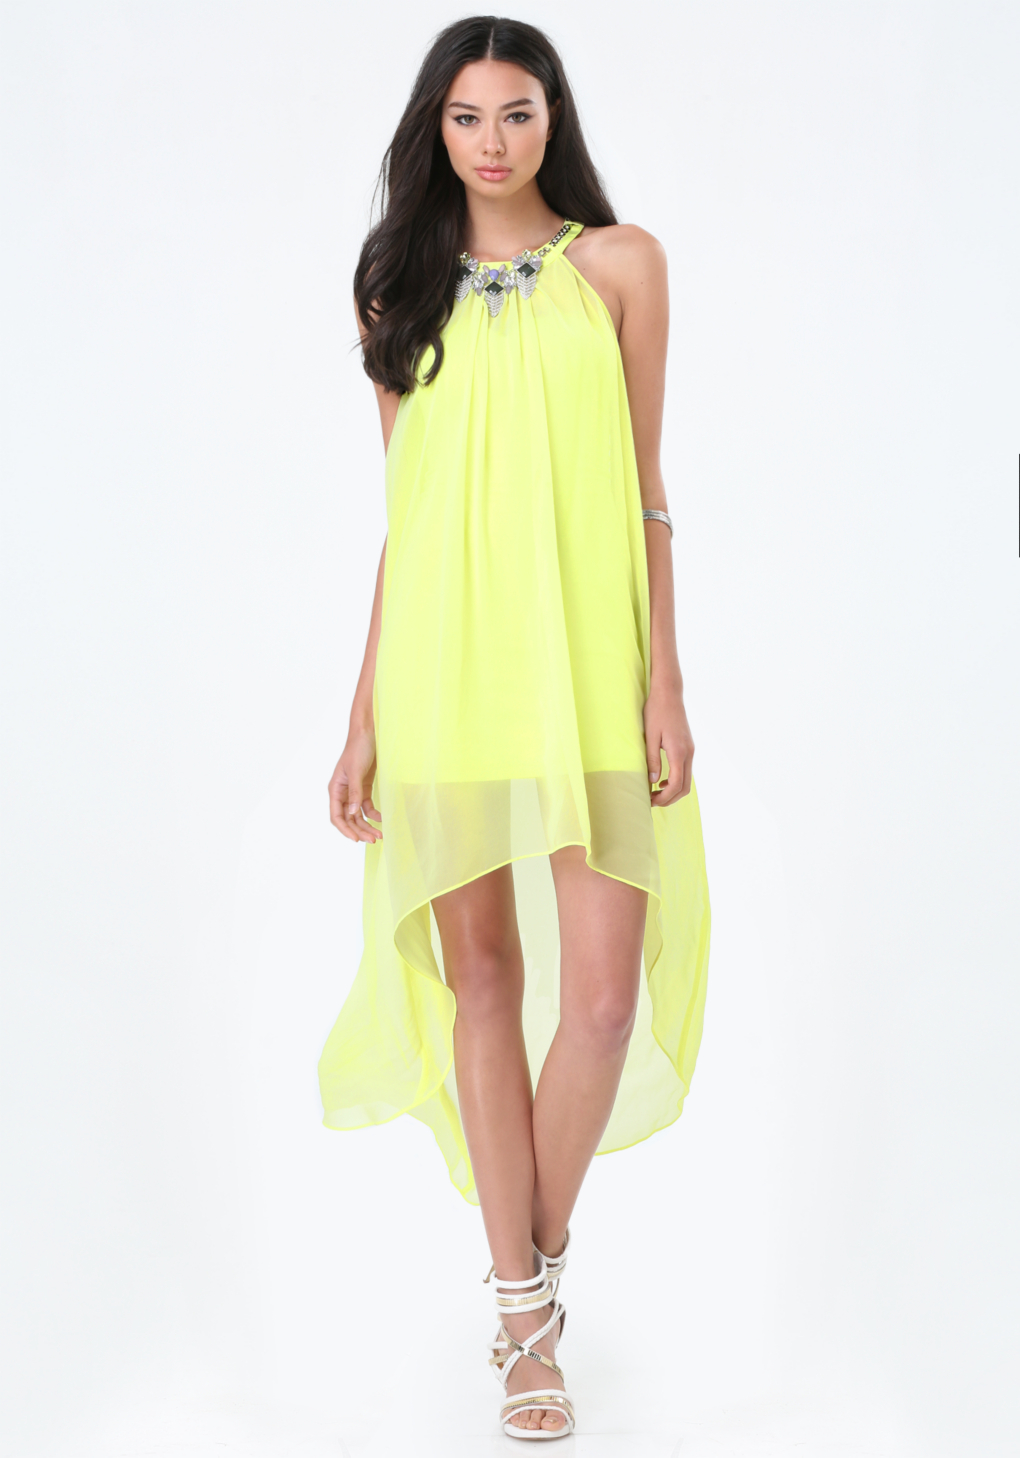 d0bc606c1e4fd Bebe Chiffon Overlay Hi-lo Dress in Yellow - Lyst